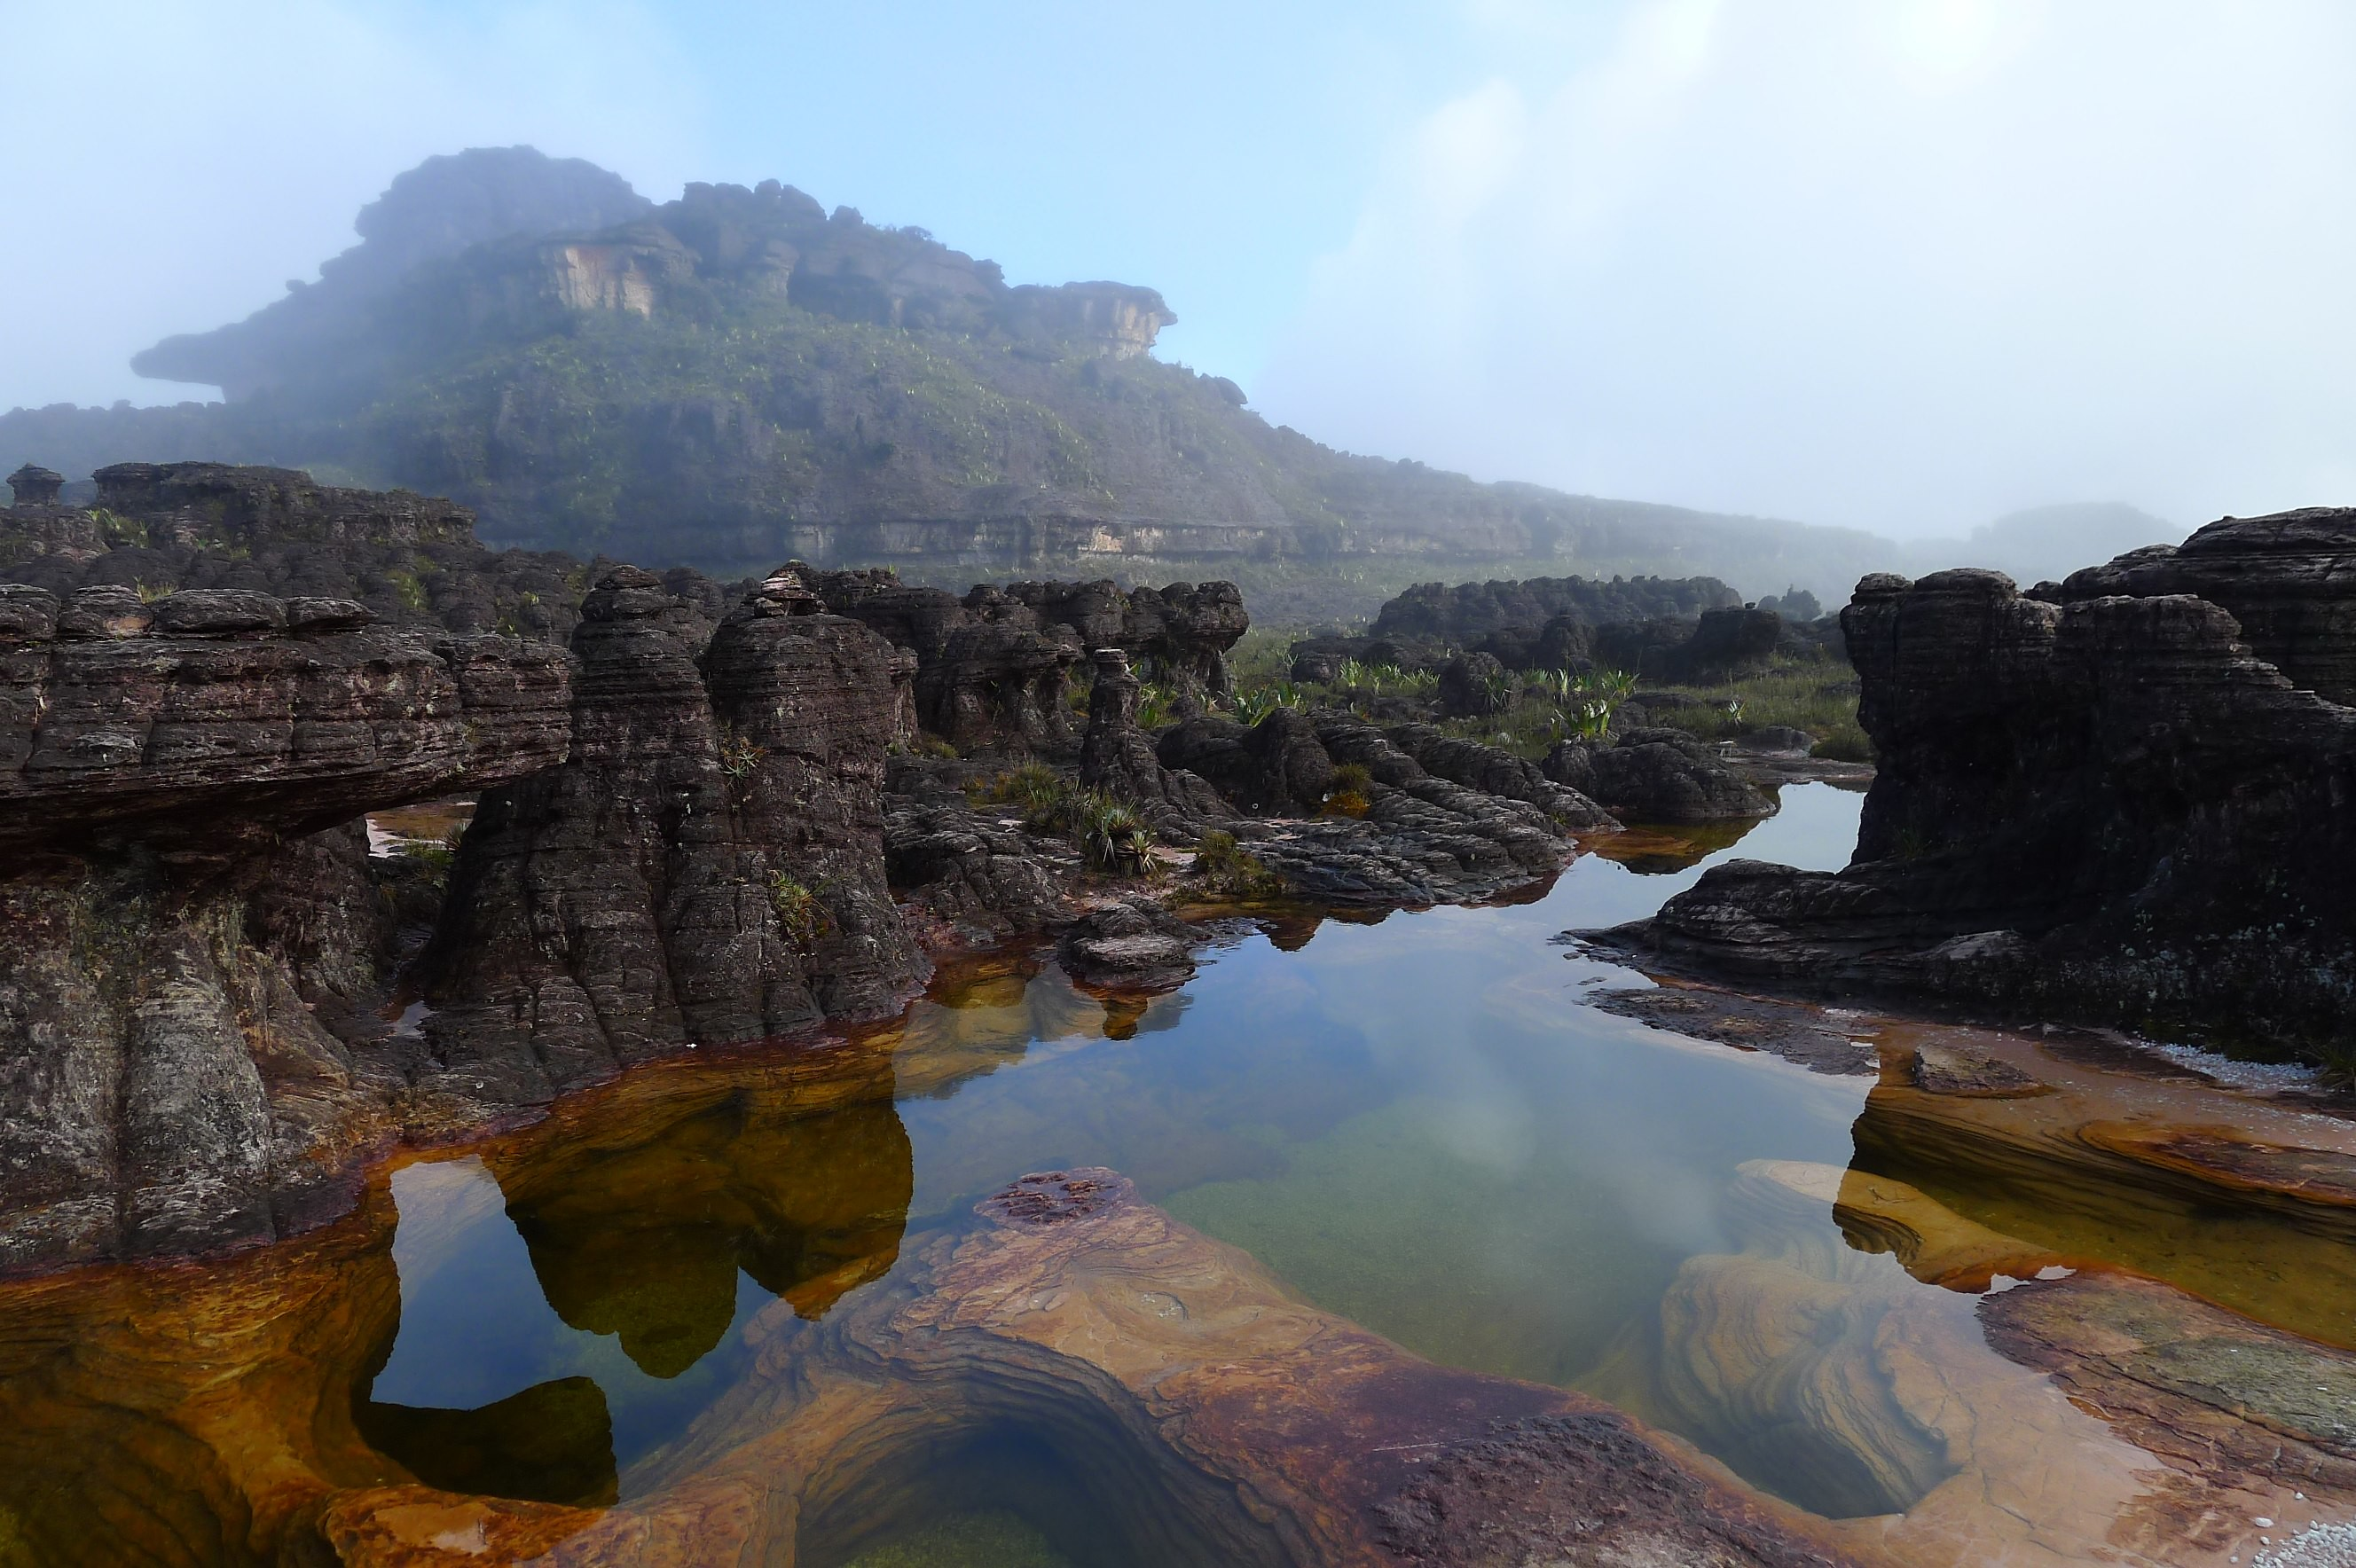 """Jacuzzis"". Summit of Roraima"